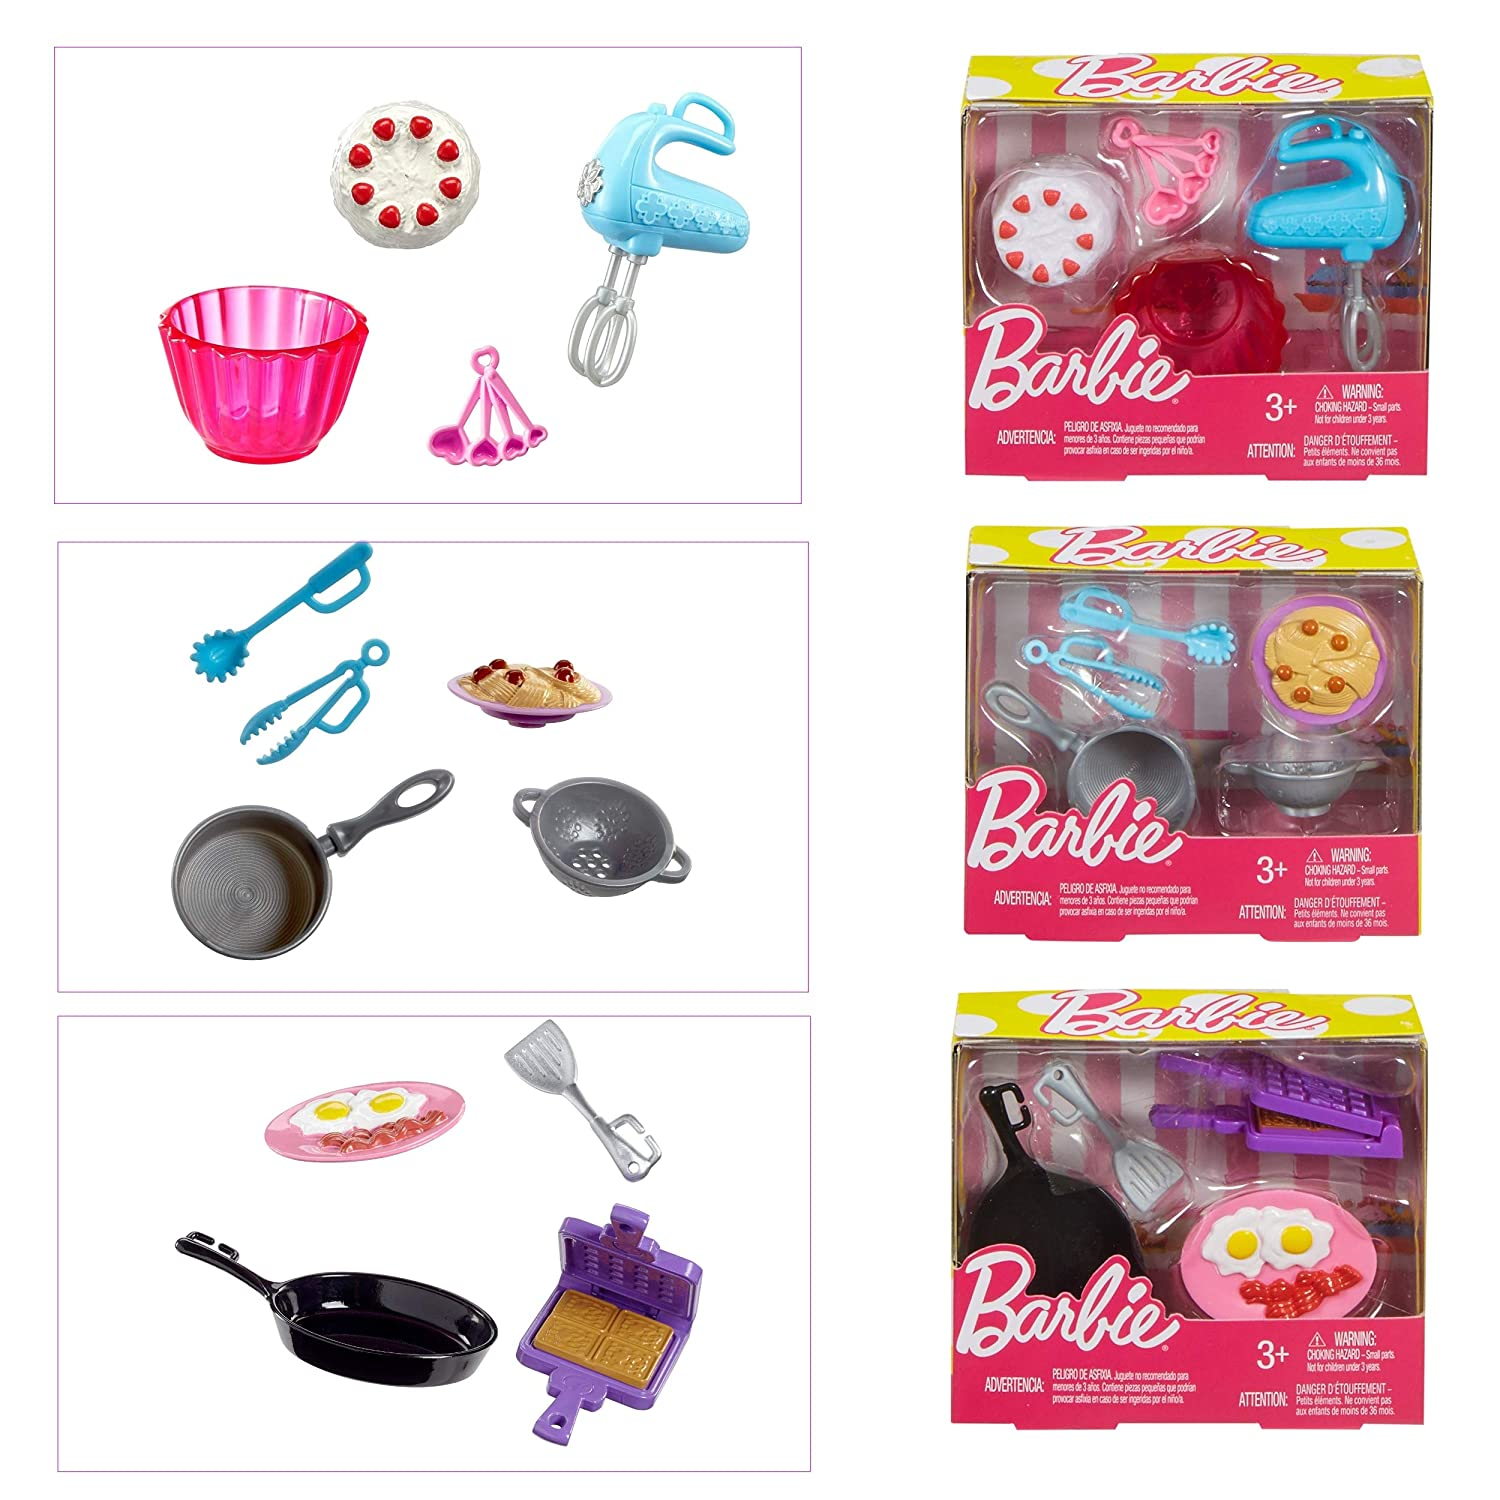 Kitchen Breakfast Pasta & Baking Accessory Playsets with Coloring Book for Barbie